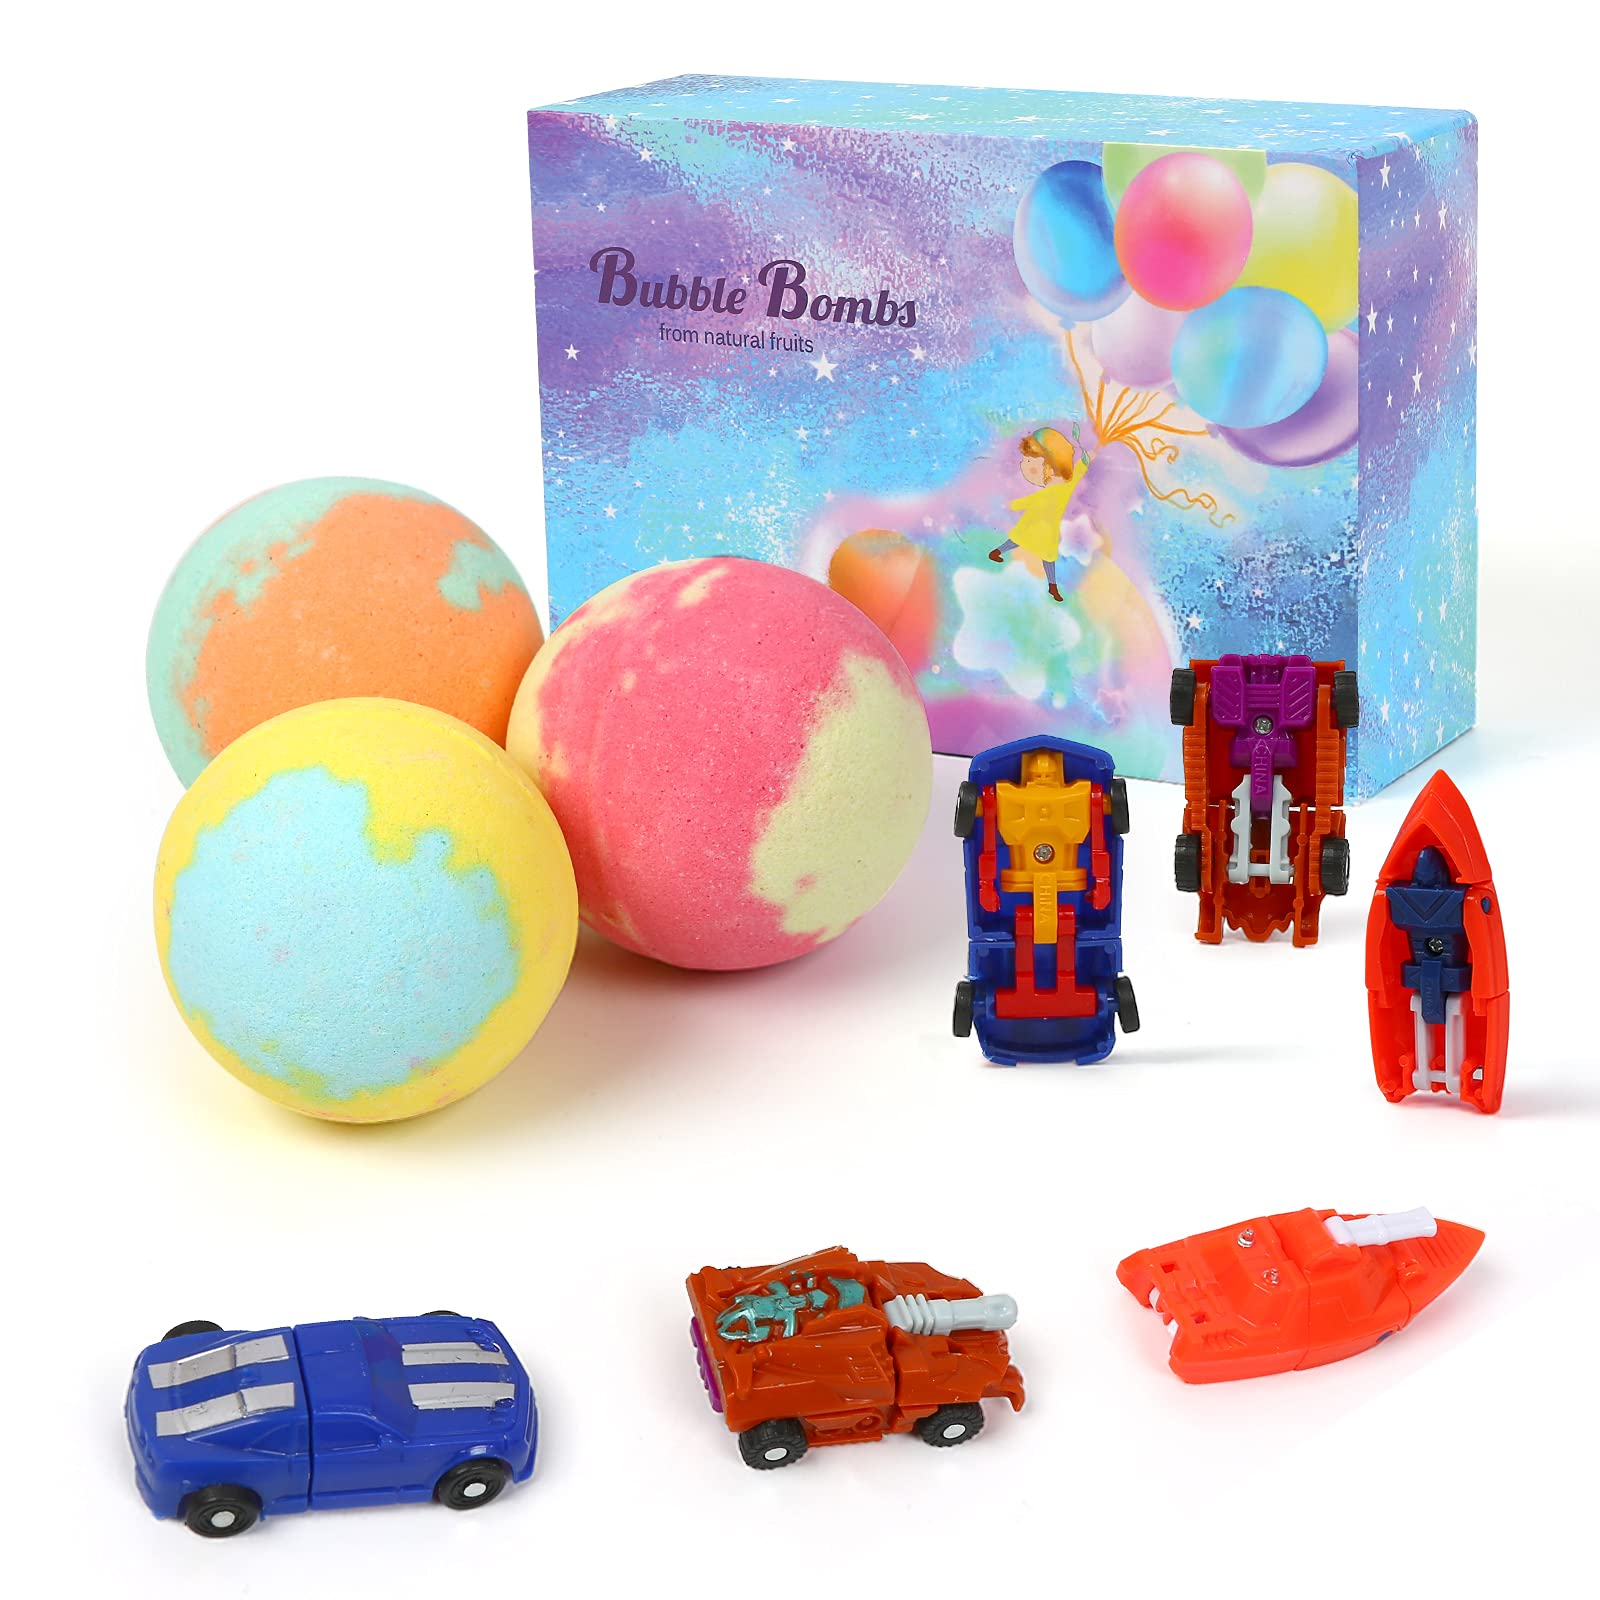 Bath Bombs for Kids Come with Random Deformation Toy car for Girls